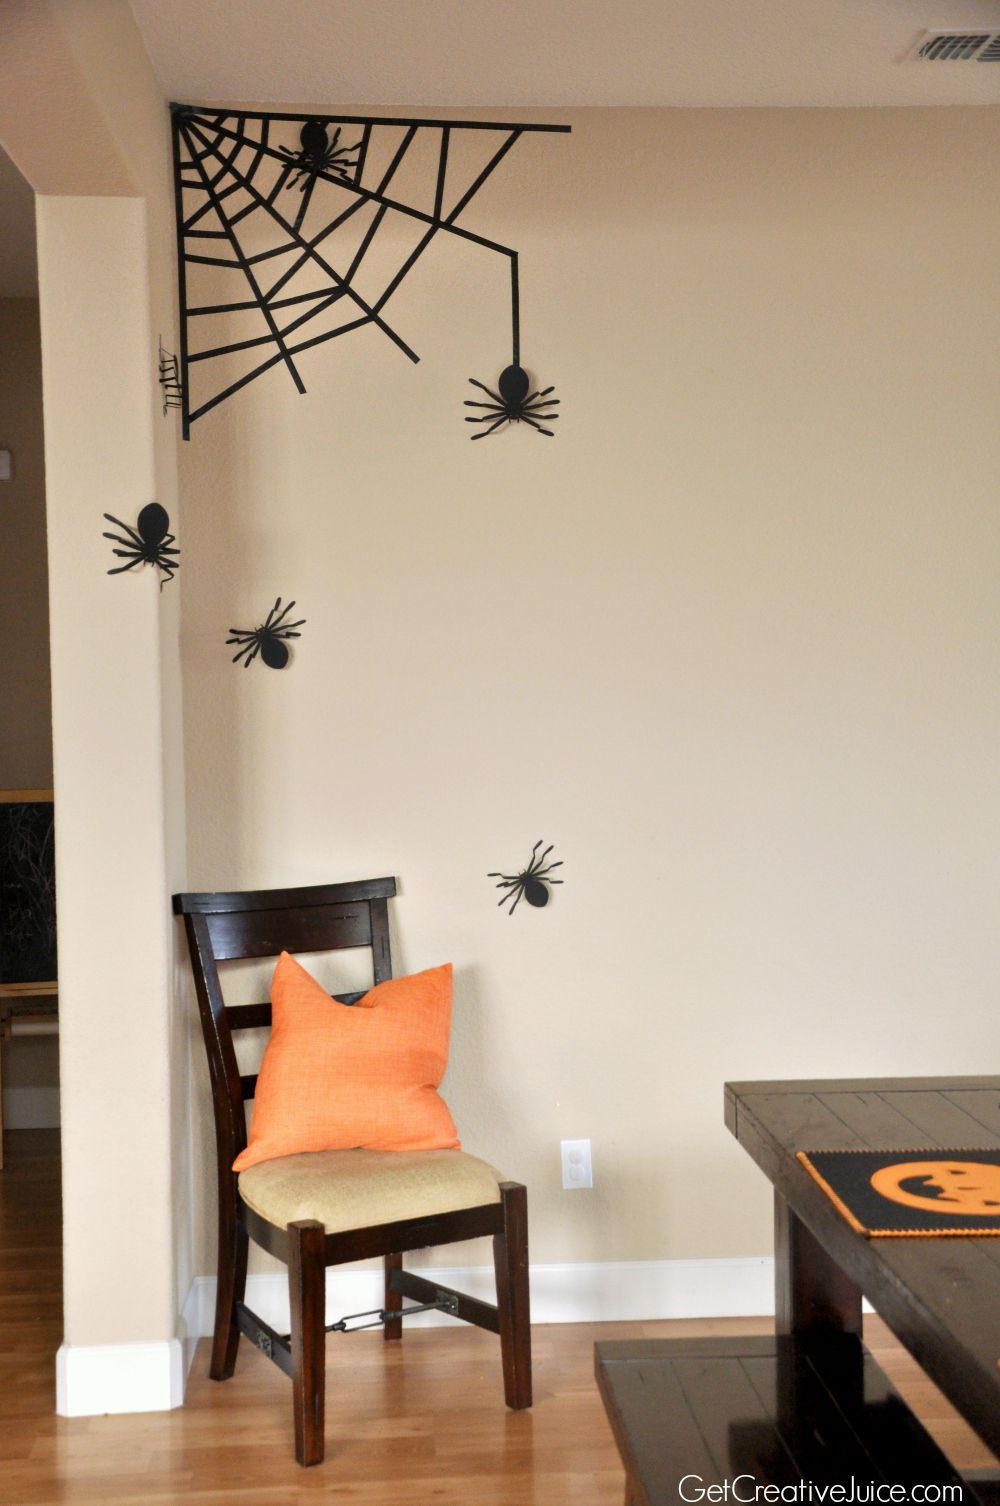 easy diy ideas for halloween decorations for your home washi tape spider web paper spiders easy tabletop decor halloween place settings - Cheap Halloween Decor